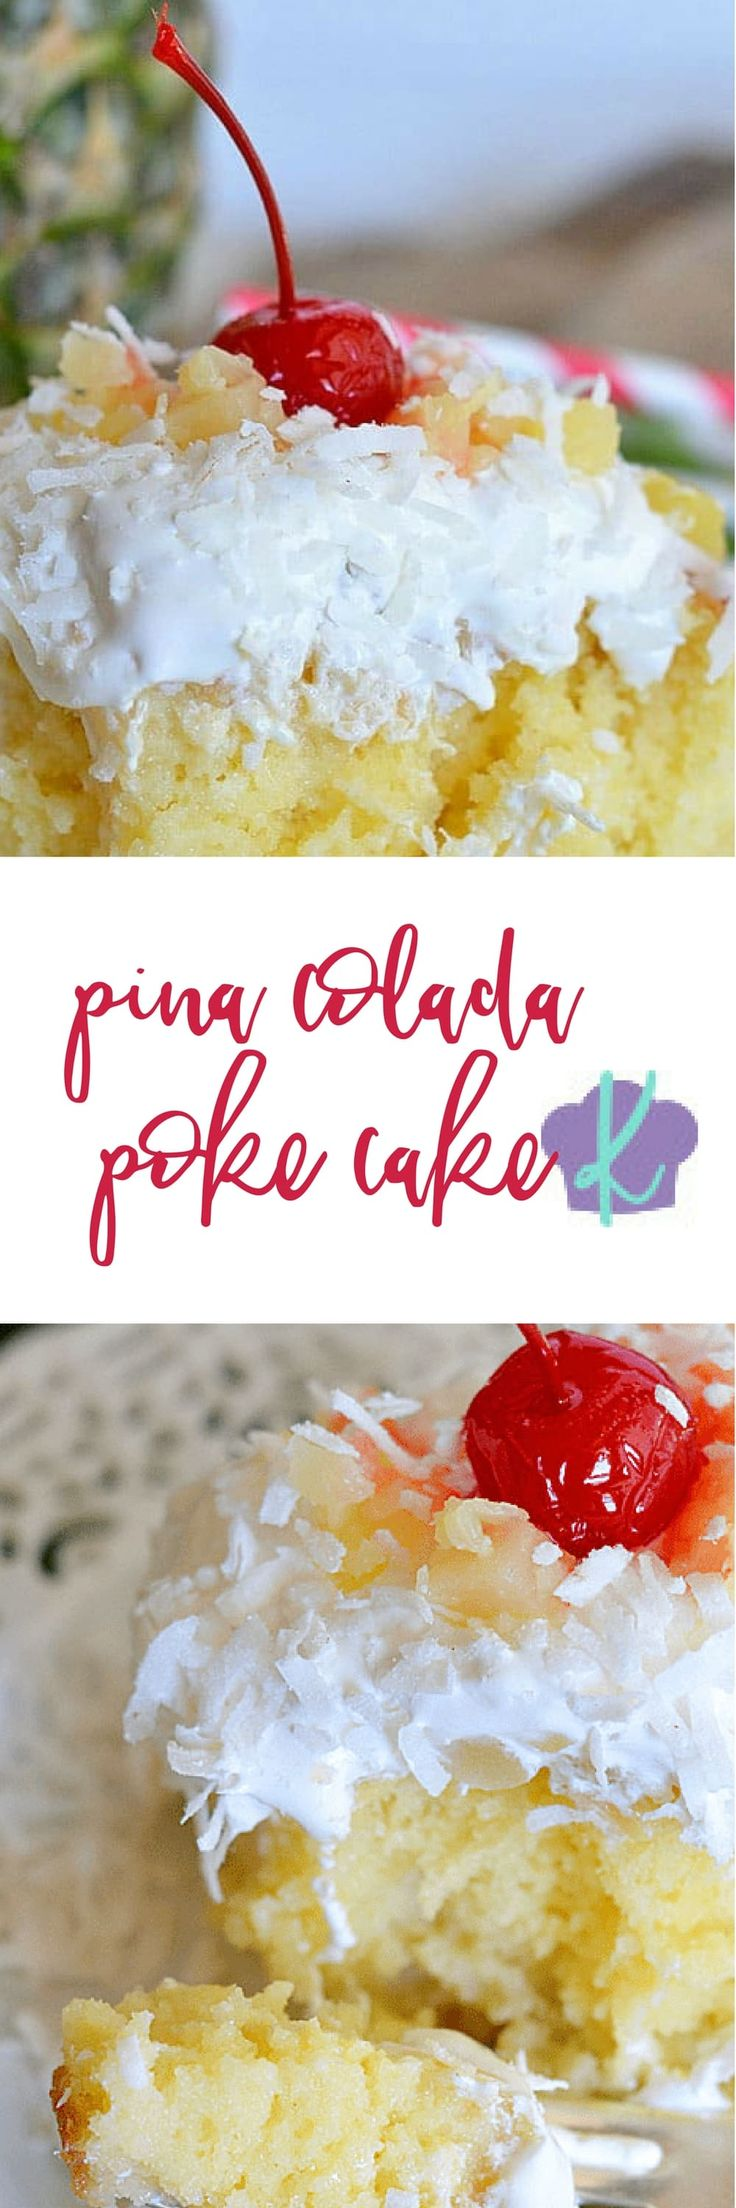 Pina Colada Poke Cake - so SIMPLE to make and absolutely DELICIOUS!   poke cake recipes   summer cake recipes   recipes with pineapple   recipes with coconut   cake recipes    Kitchen Meets Girl